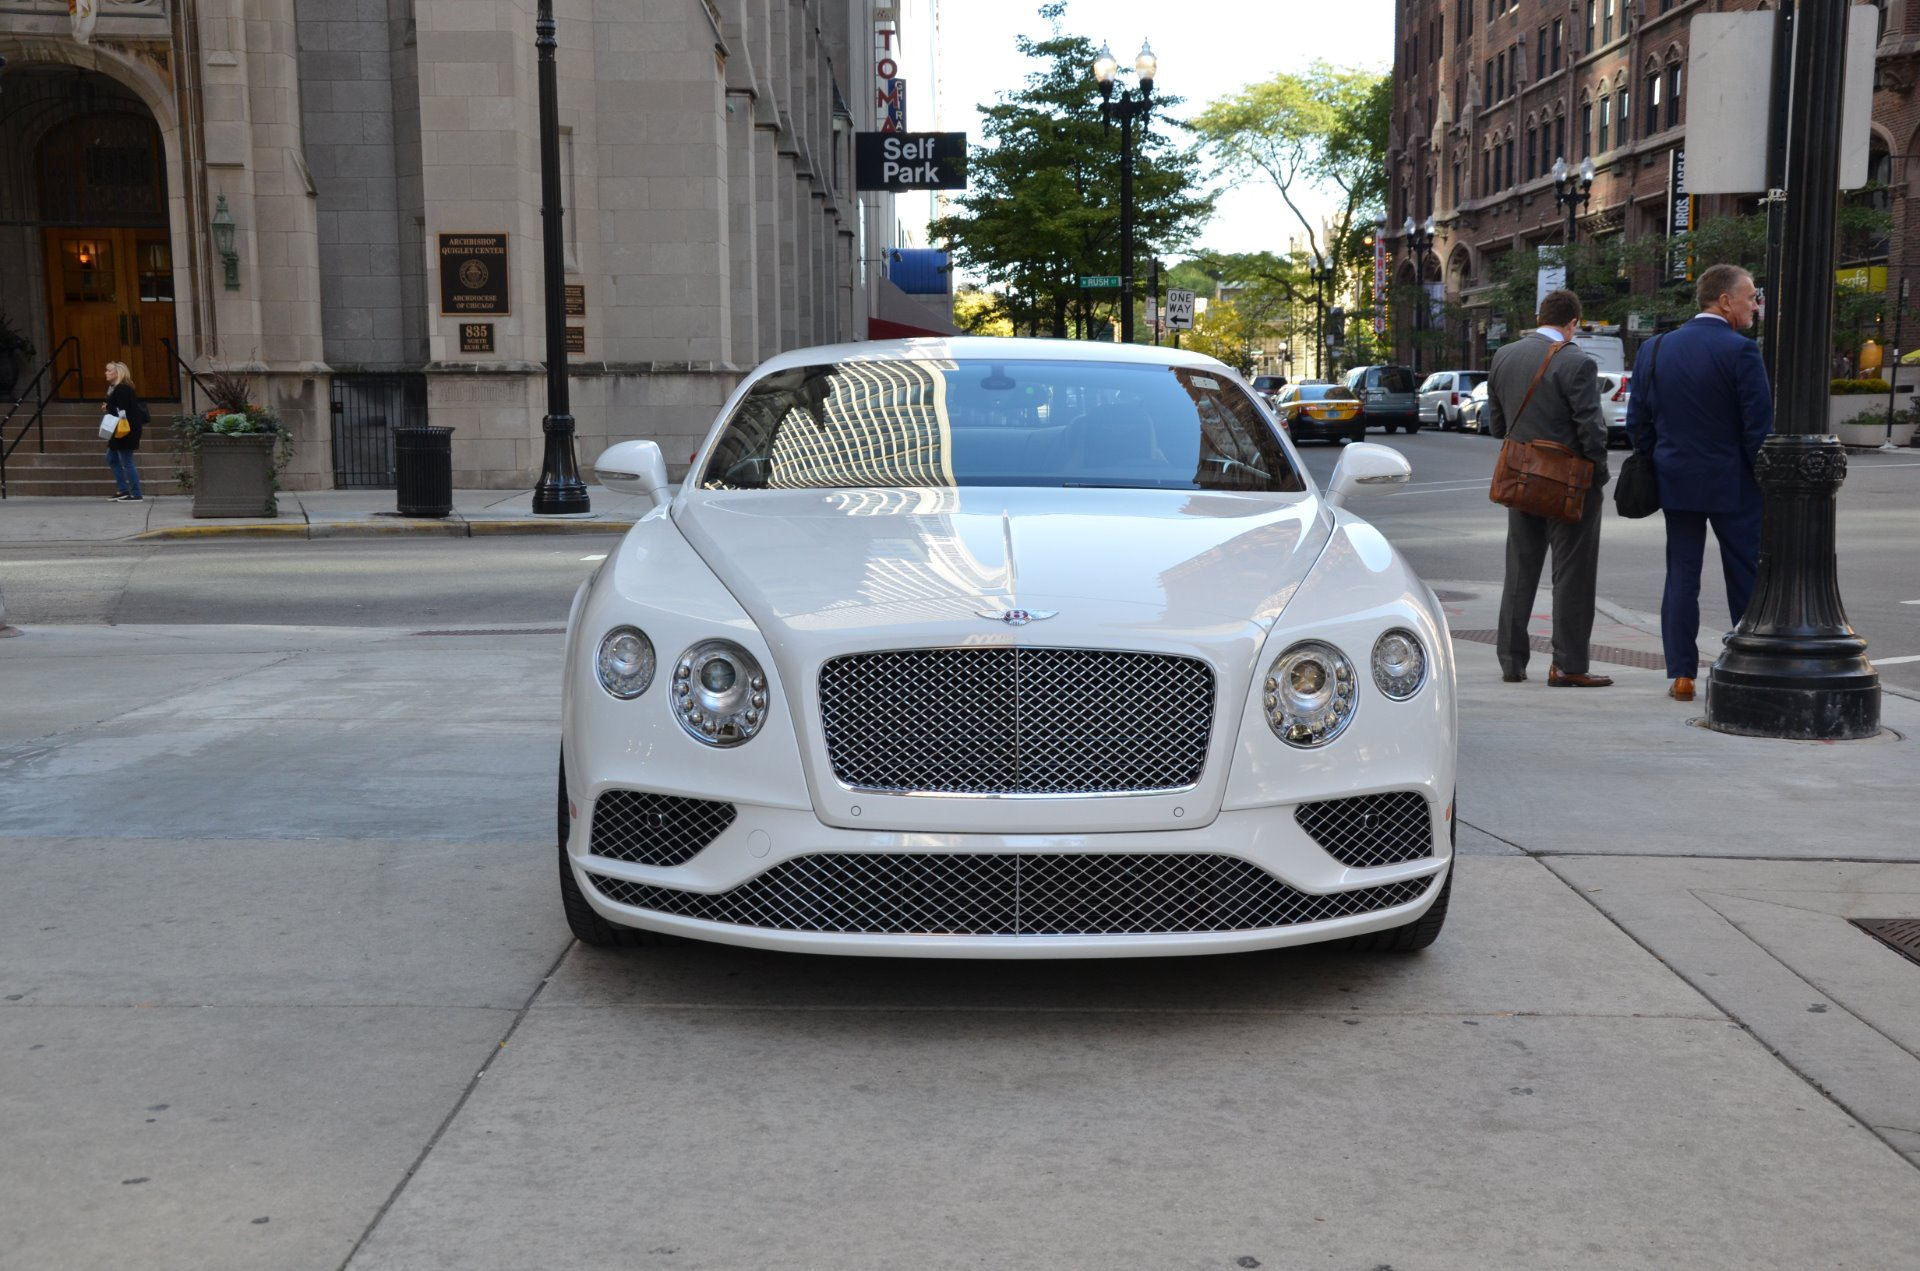 2017 bentley continental gt v8 stock b840 s for sale near chicago il il bentley dealer. Black Bedroom Furniture Sets. Home Design Ideas